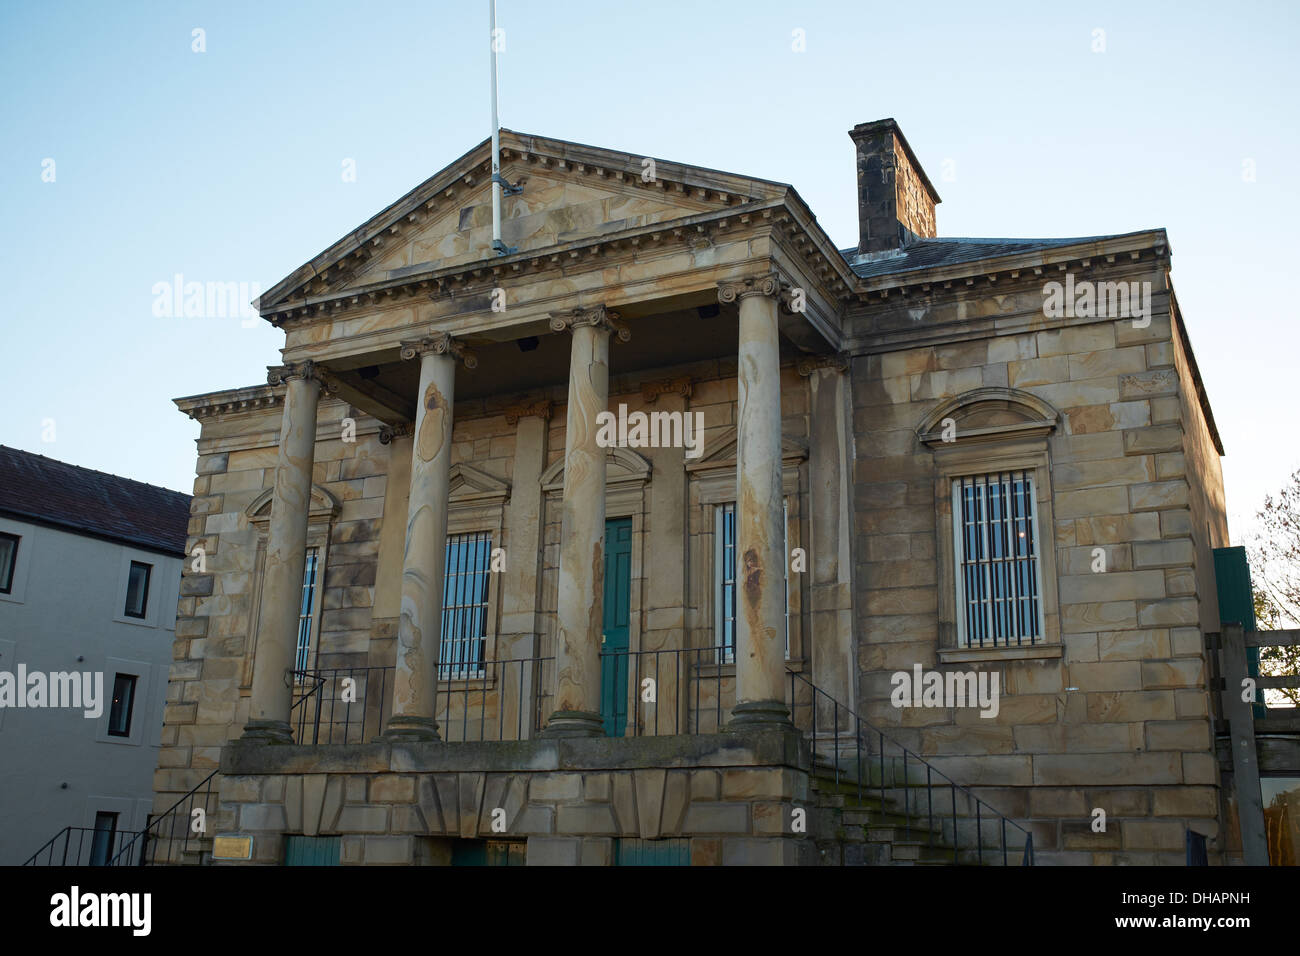 The Lancaster Maritime Museum - Stock Image